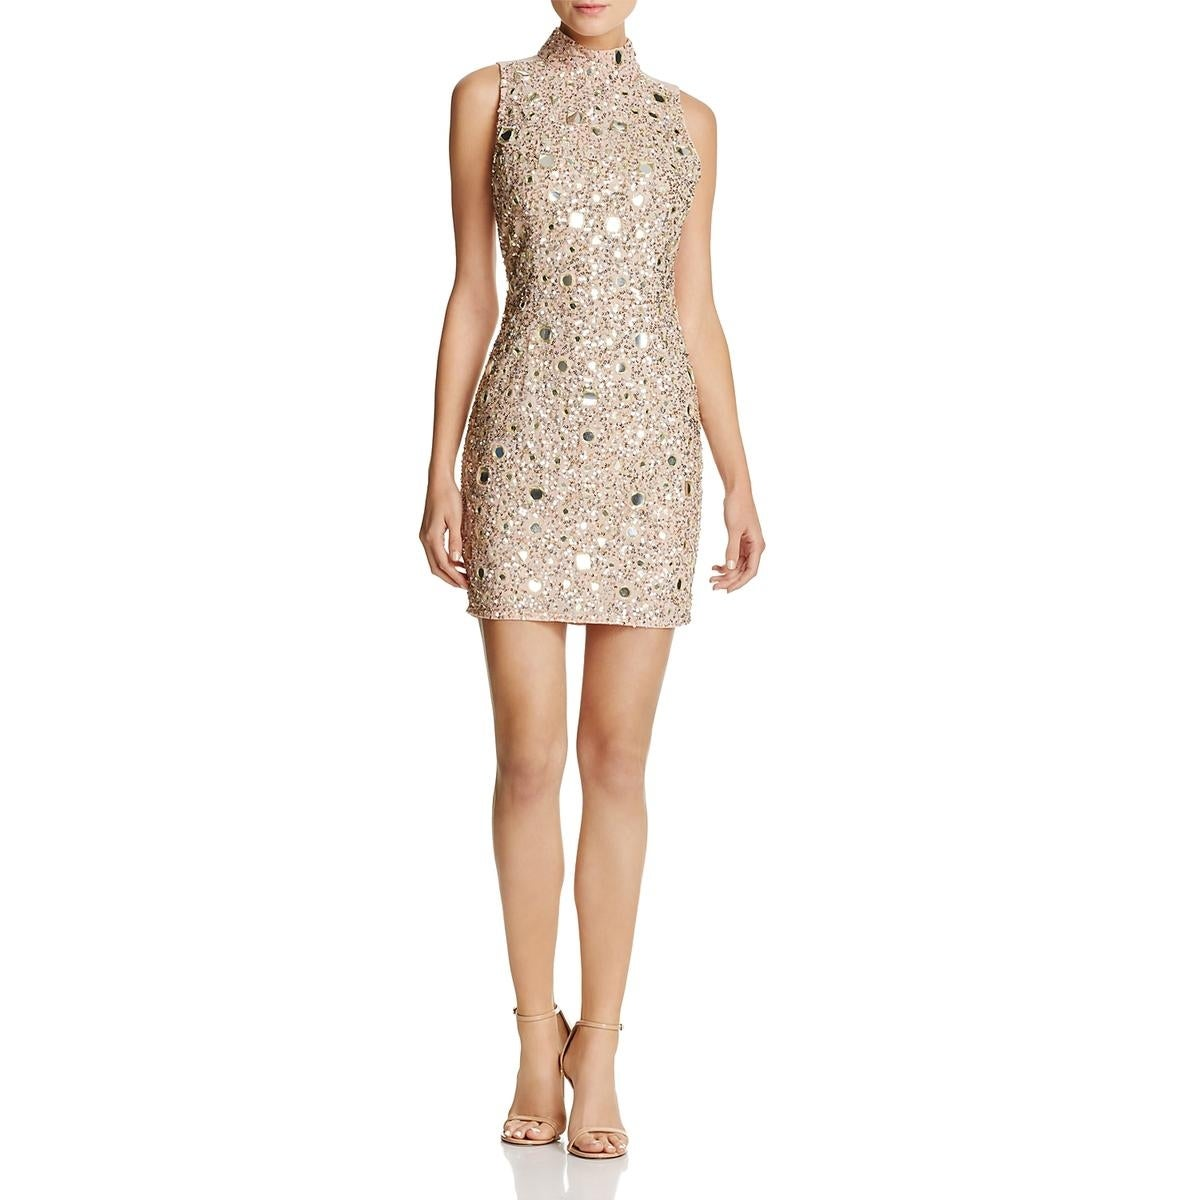 27d96a747d21 Shop French Connection Womens Eloise Mirrors Cocktail Dress Sleeveless Mini  - Free Shipping Today - Overstock - 23088947